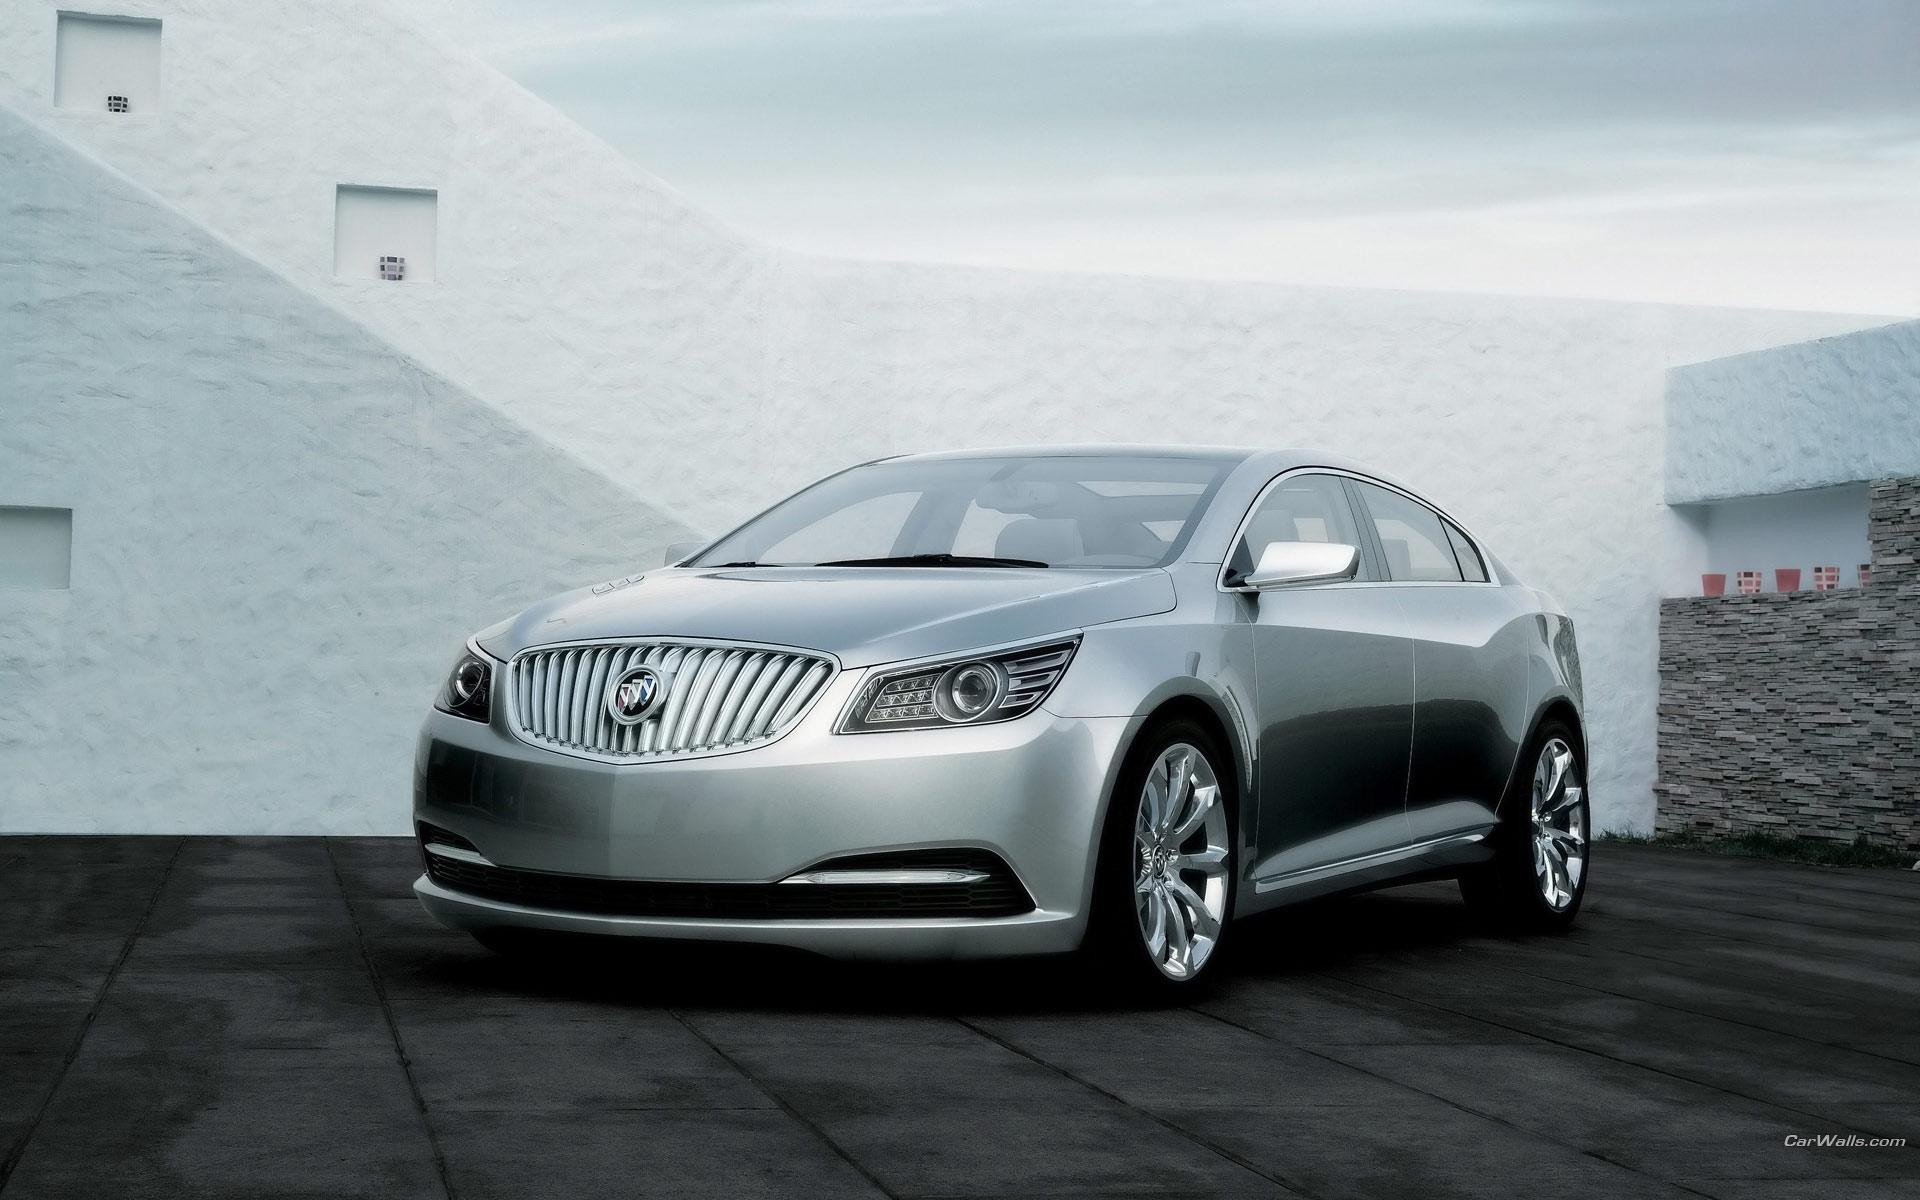 Buick Invicta concept car 1920x1200